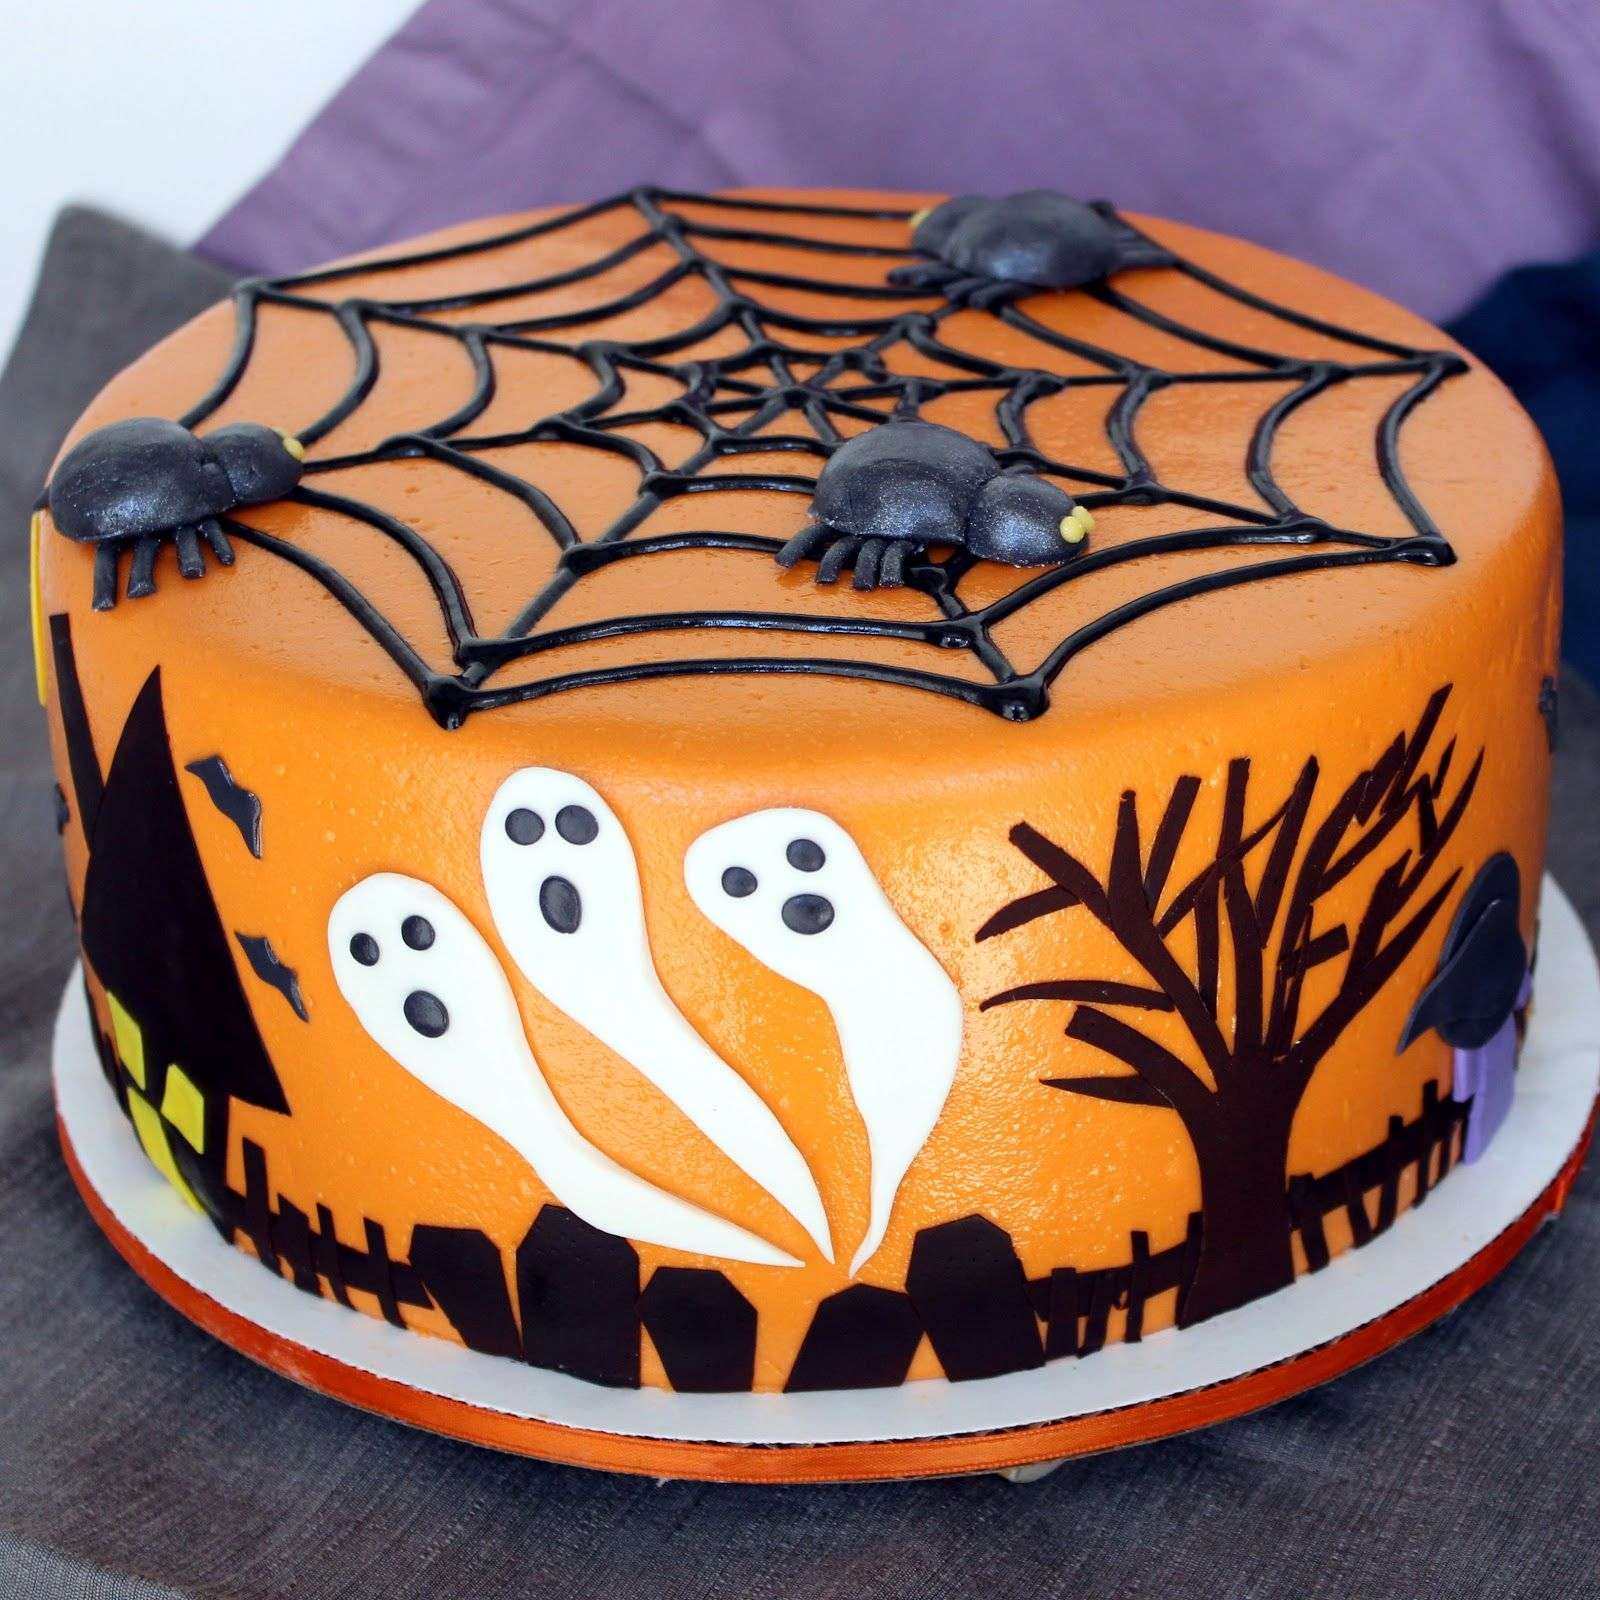 you can make many kinds of shapes in the halloween cake decorations